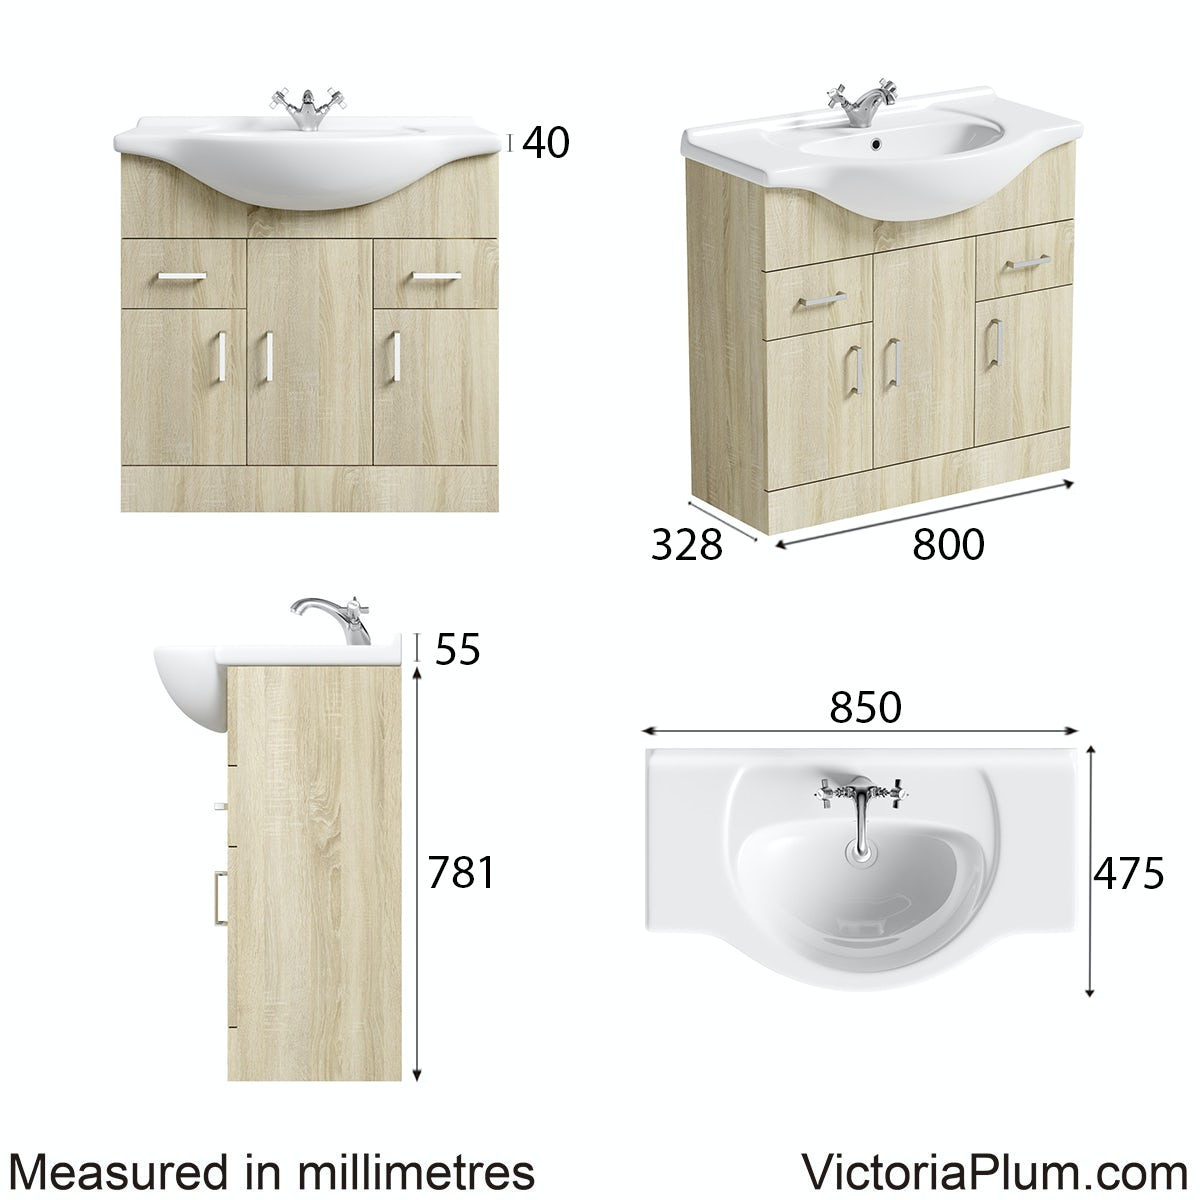 Dimensions for Orchard Eden oak vanity unit and basin 850mm